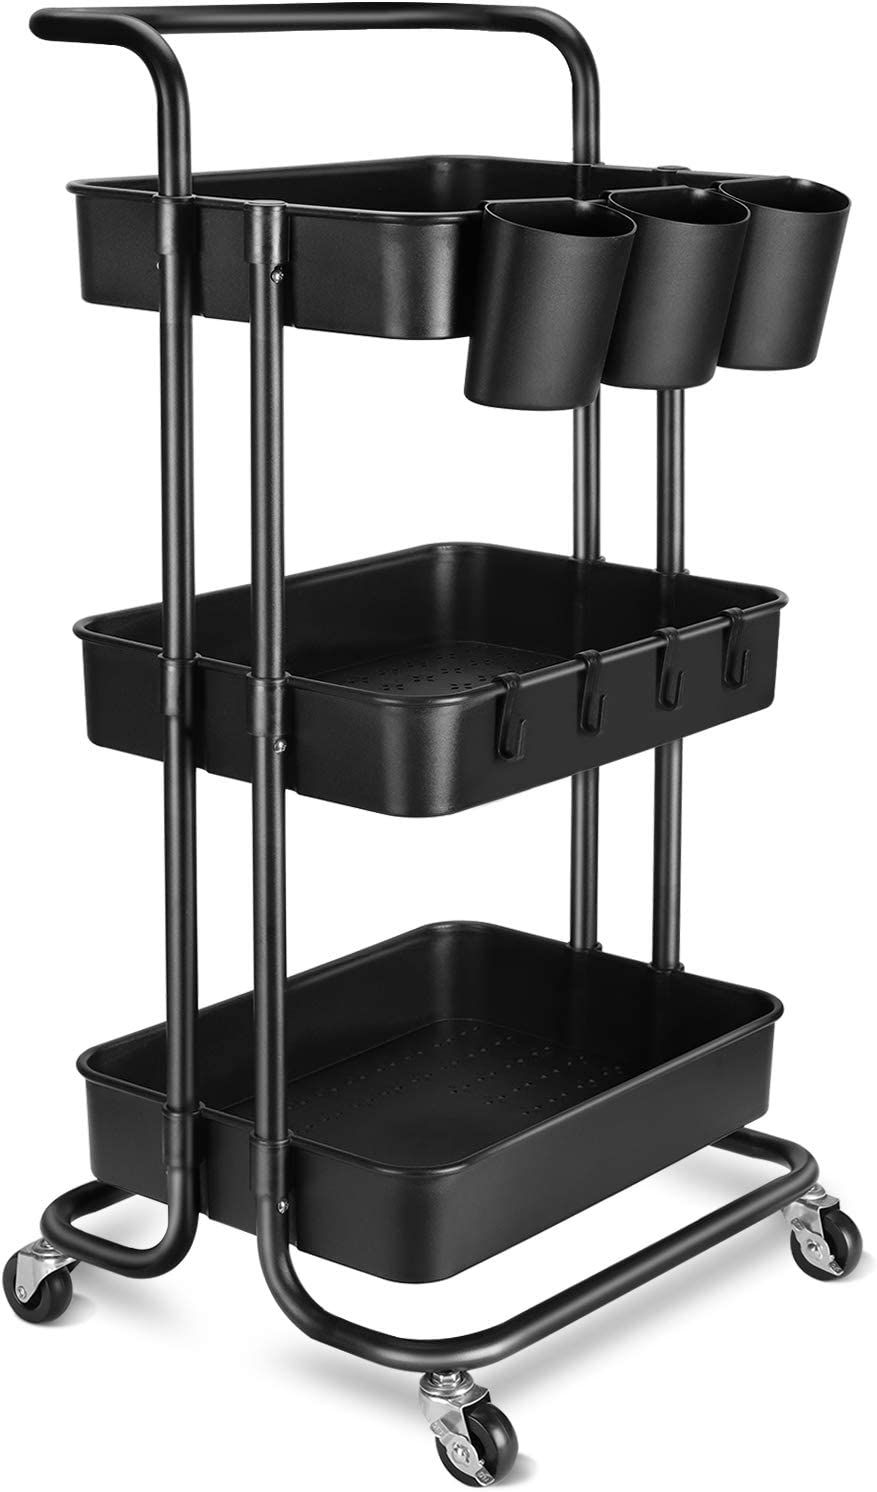 3-Tier Rolling Mobile Utility Cart with Hanging Cups & Hooks & Handle Multifunctional Organizer Storage Trolley Service Cart with Wheels Easy Assembly for Office, Bathroom, Kitchen (Black)